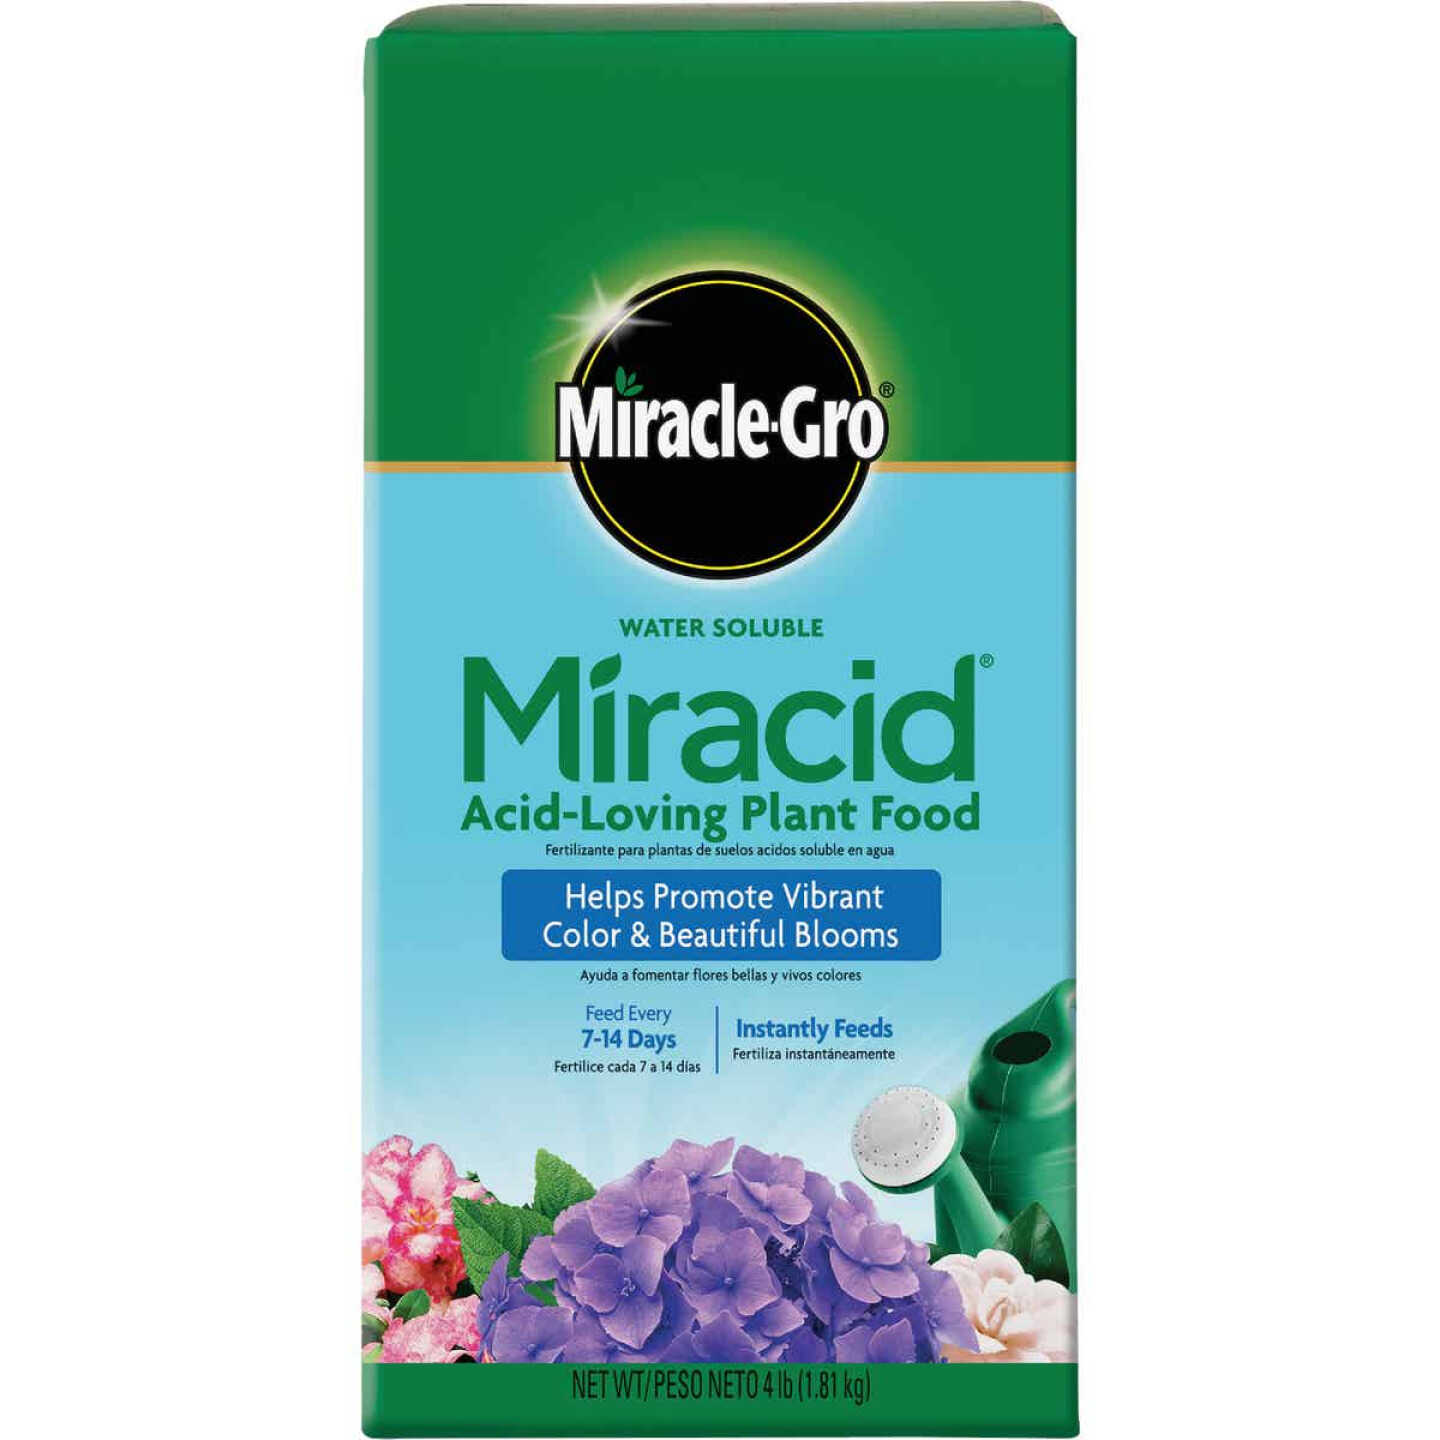 Miracle-Gro Miracid 4 Lb. 30-10-10 Dry Plant Food Image 1